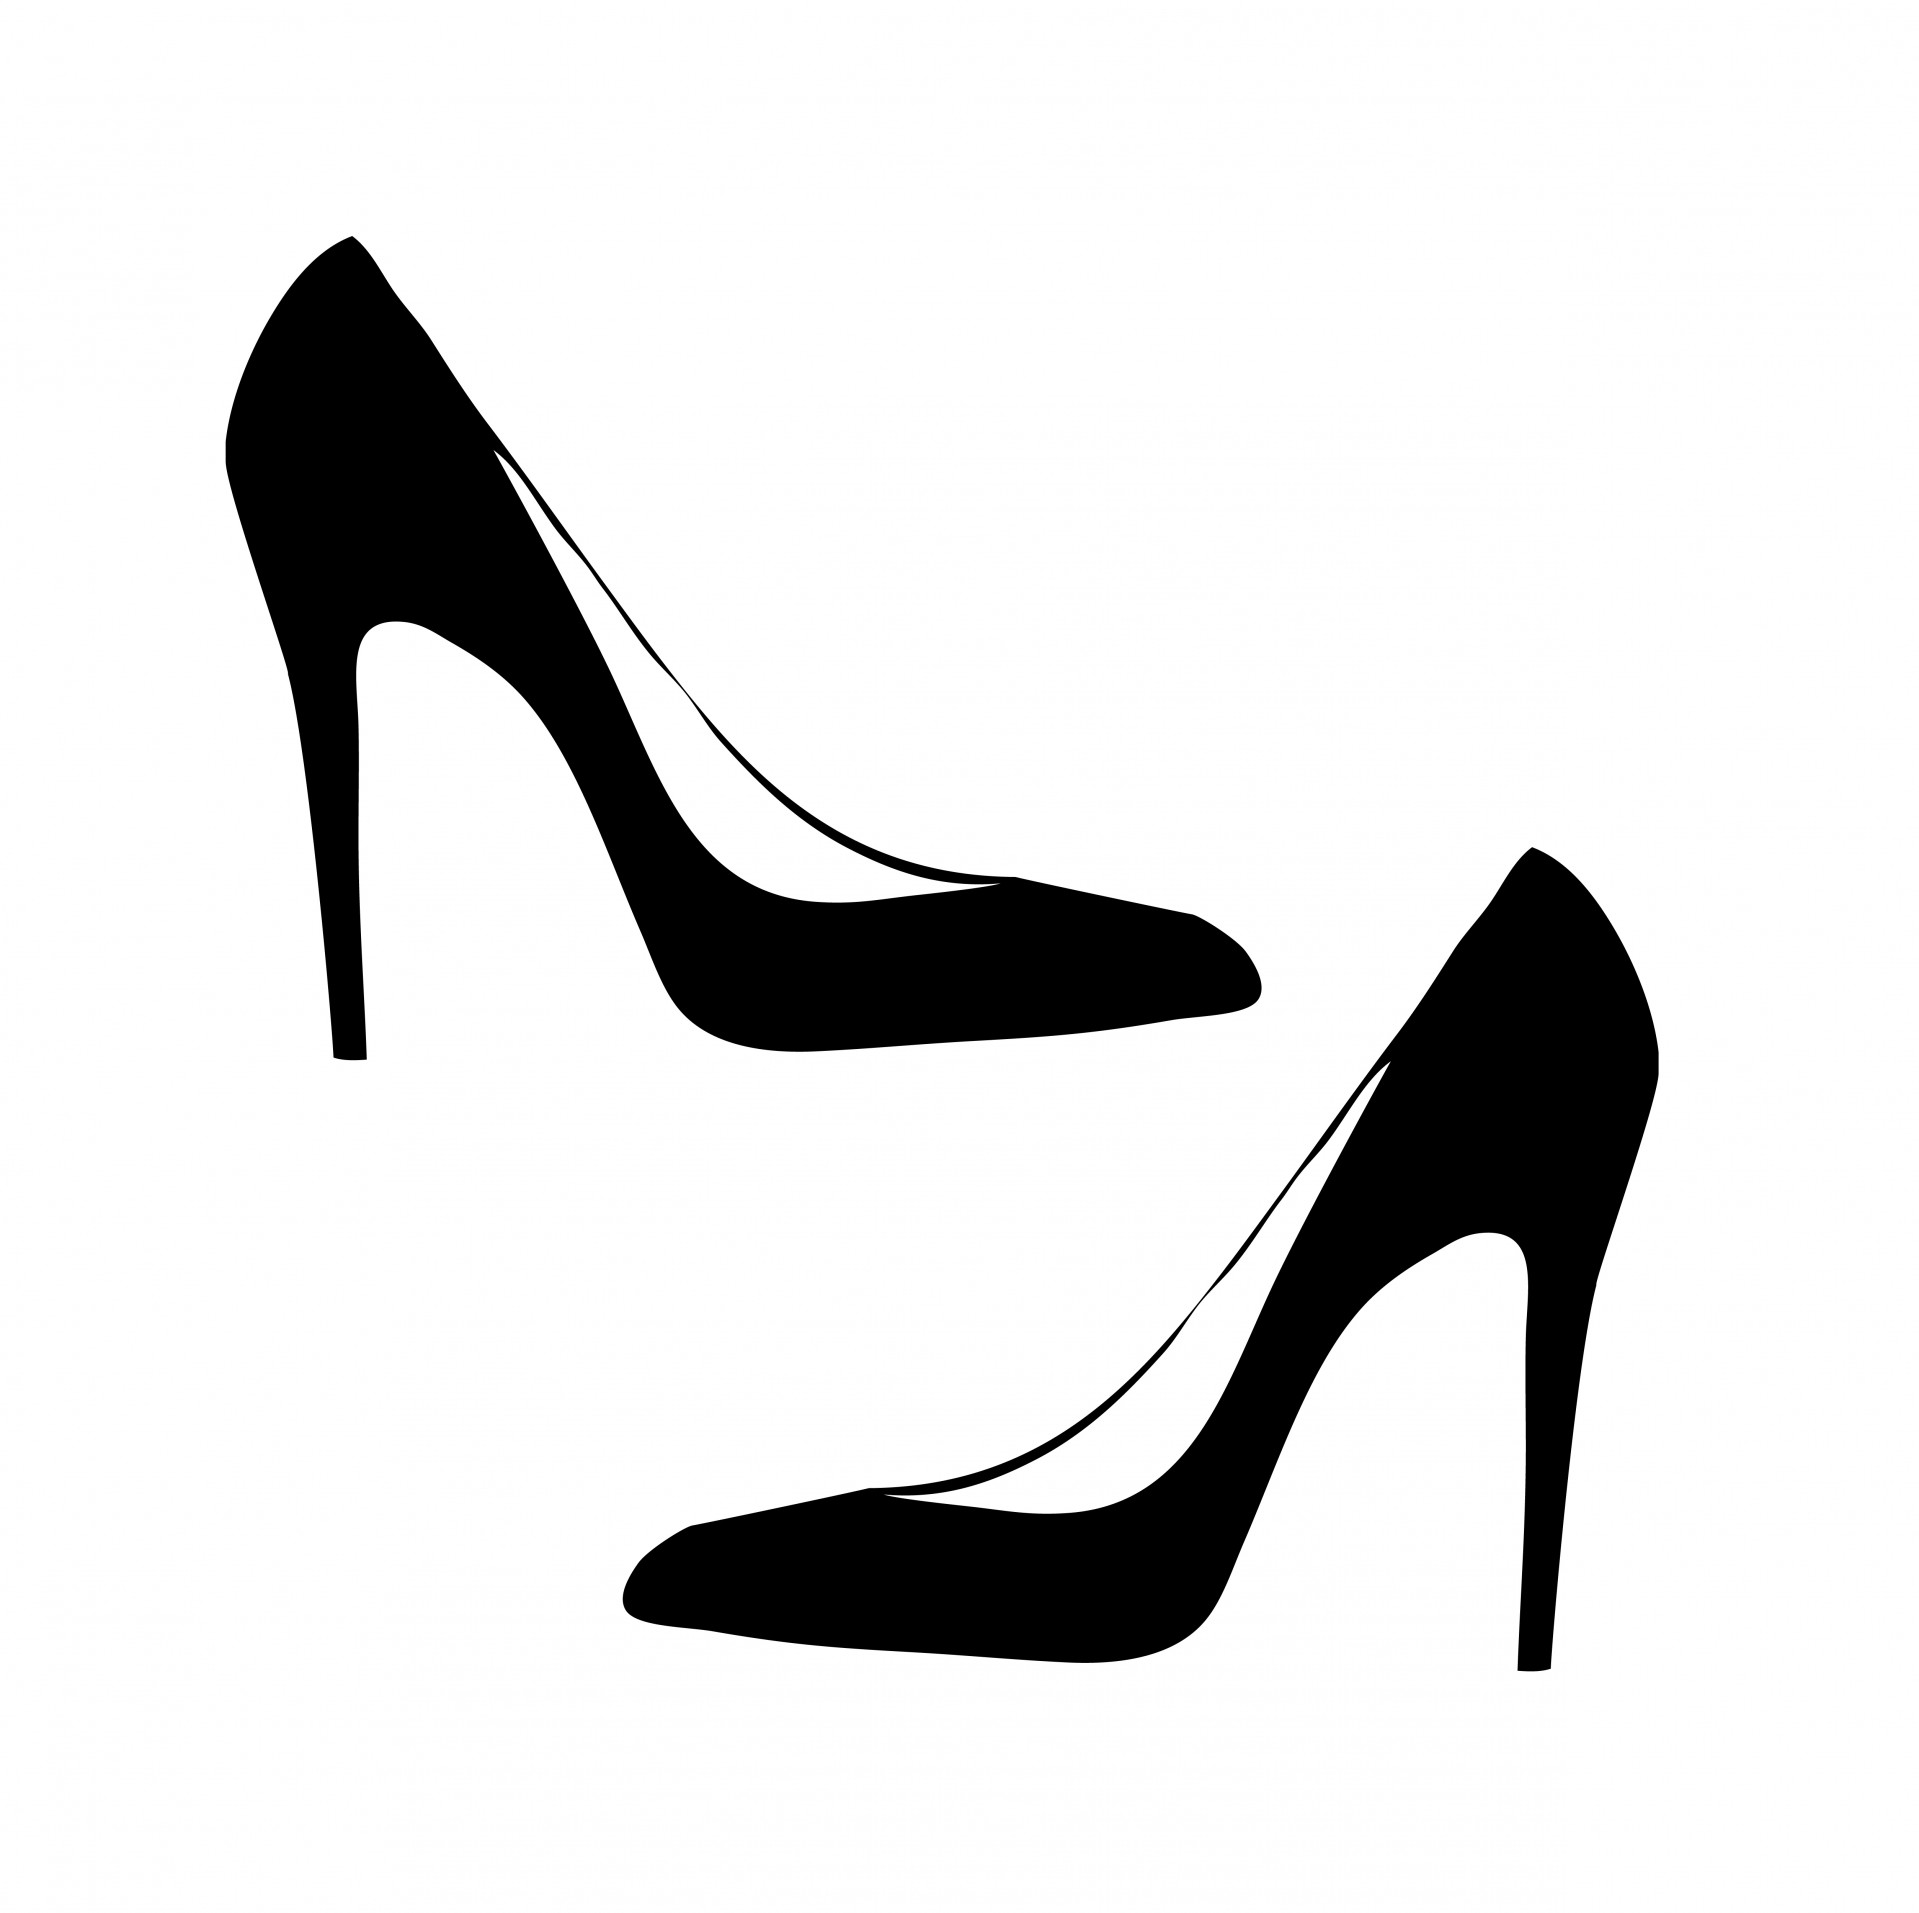 1919x1913 Shoes For Women Black Free Stock Photo